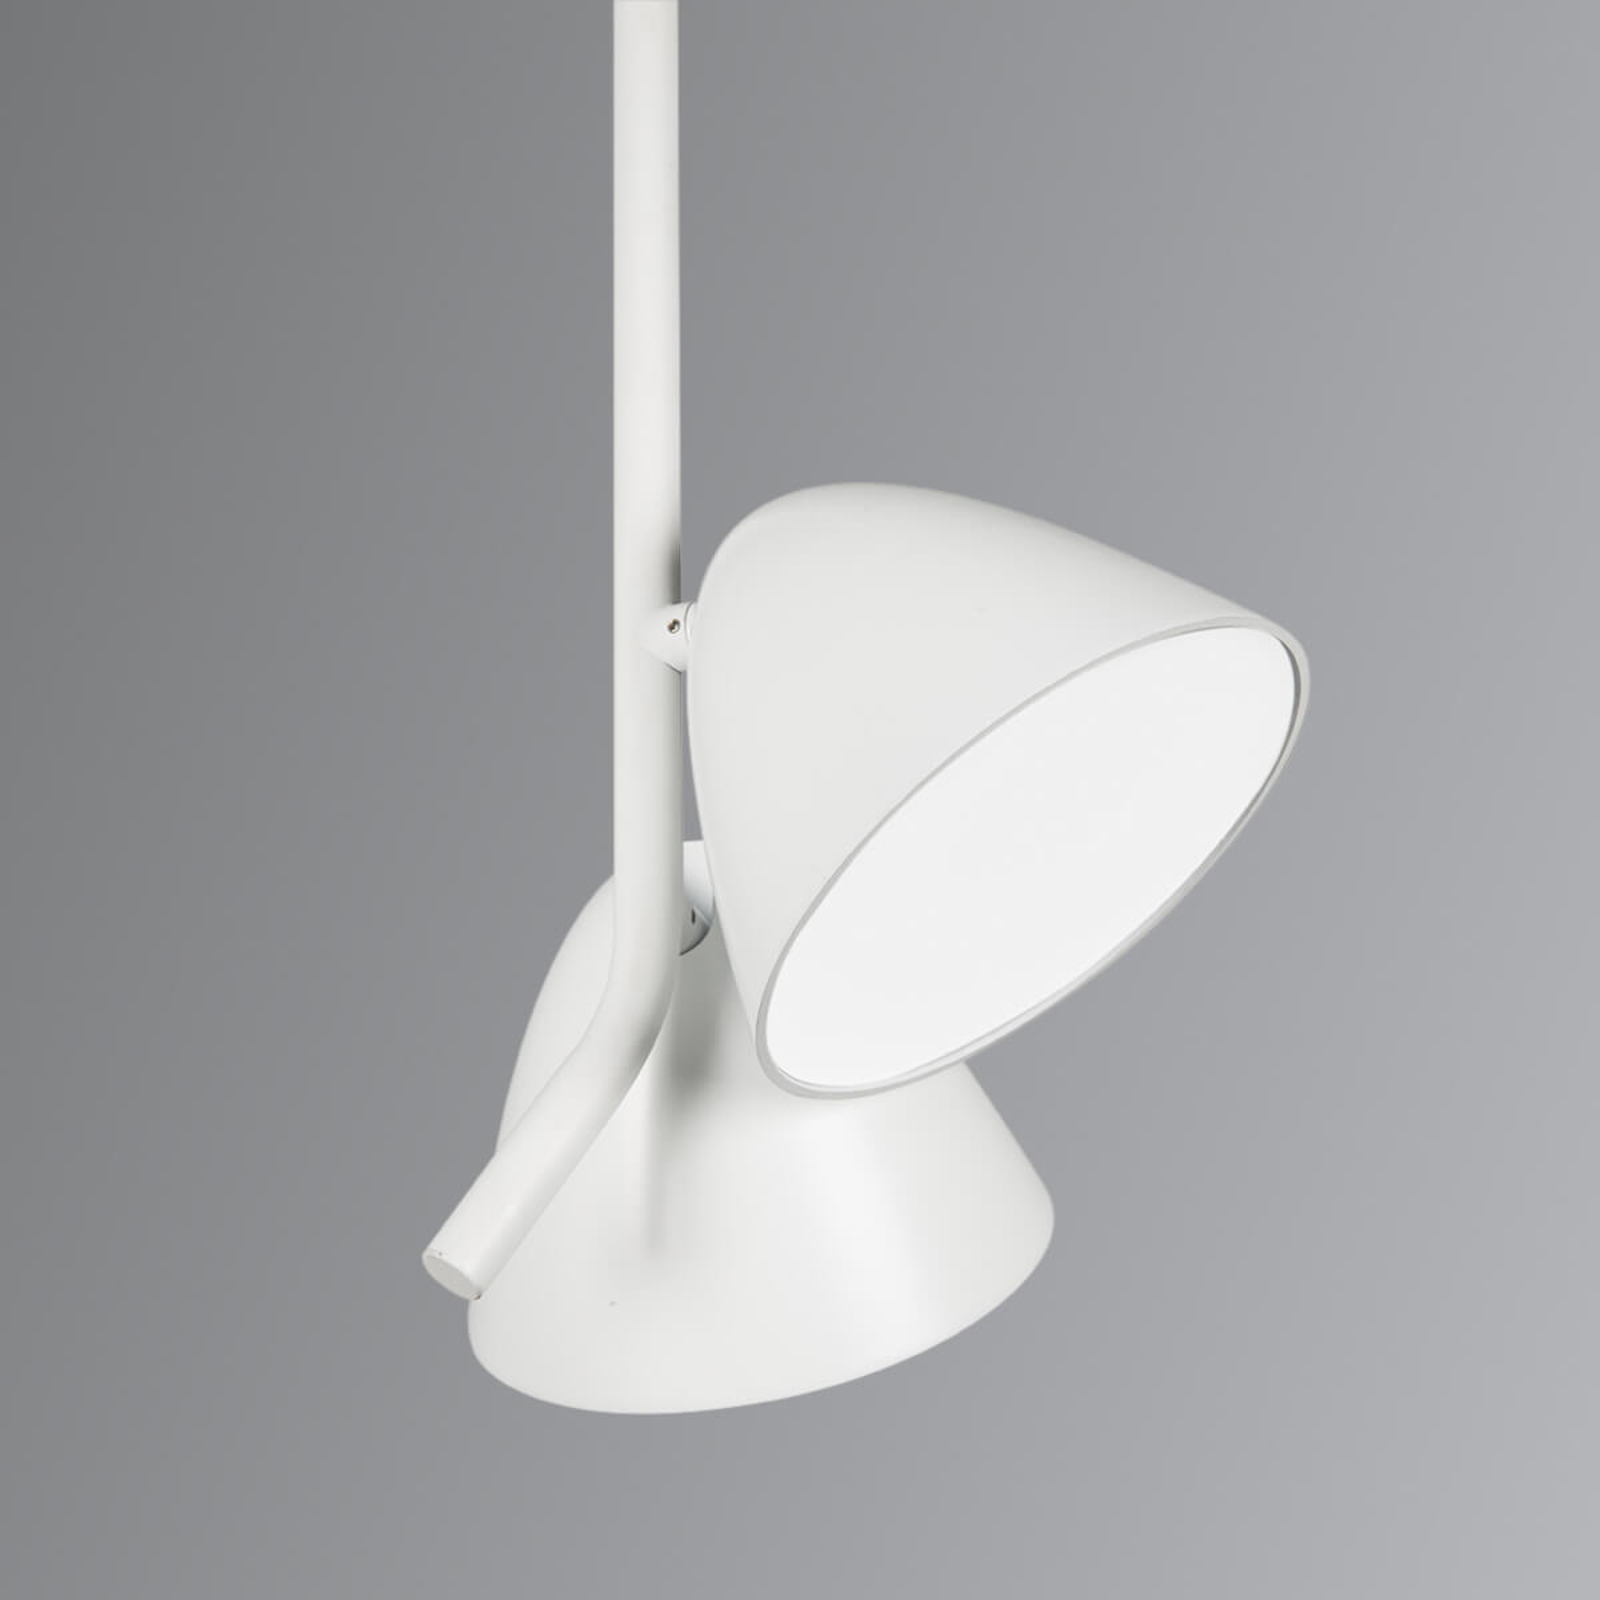 Witte LED hanglamp Flash 2-lamps